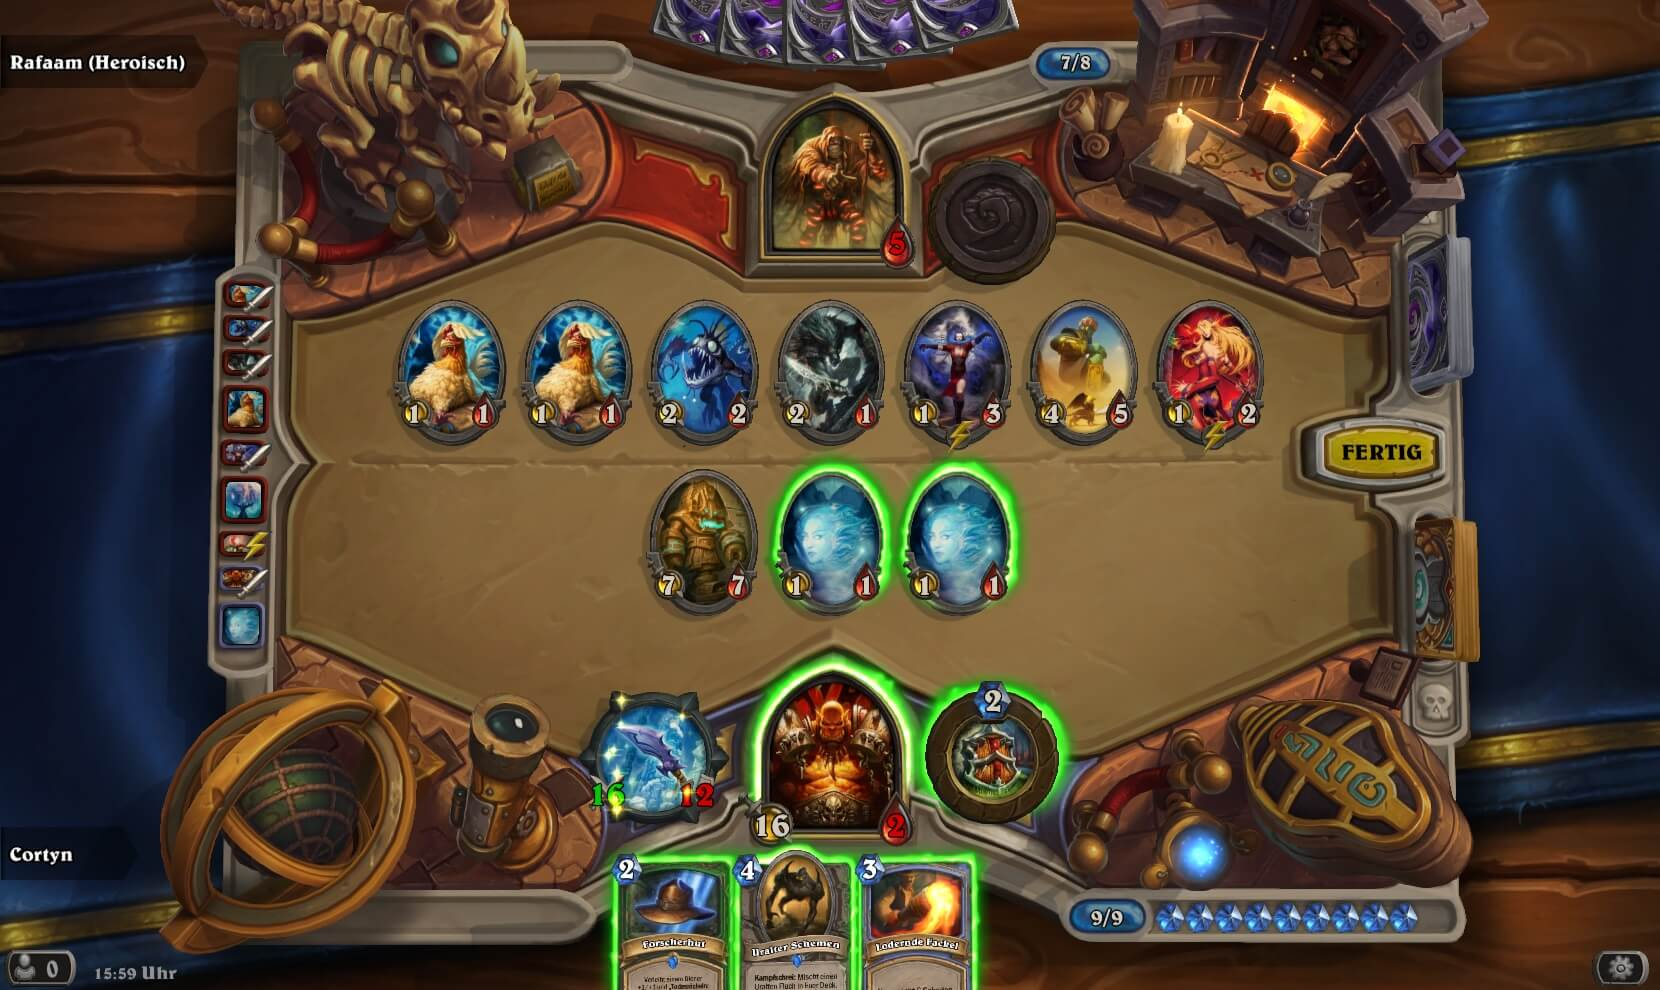 Hearthstone Rafaam heroisch Gameplay